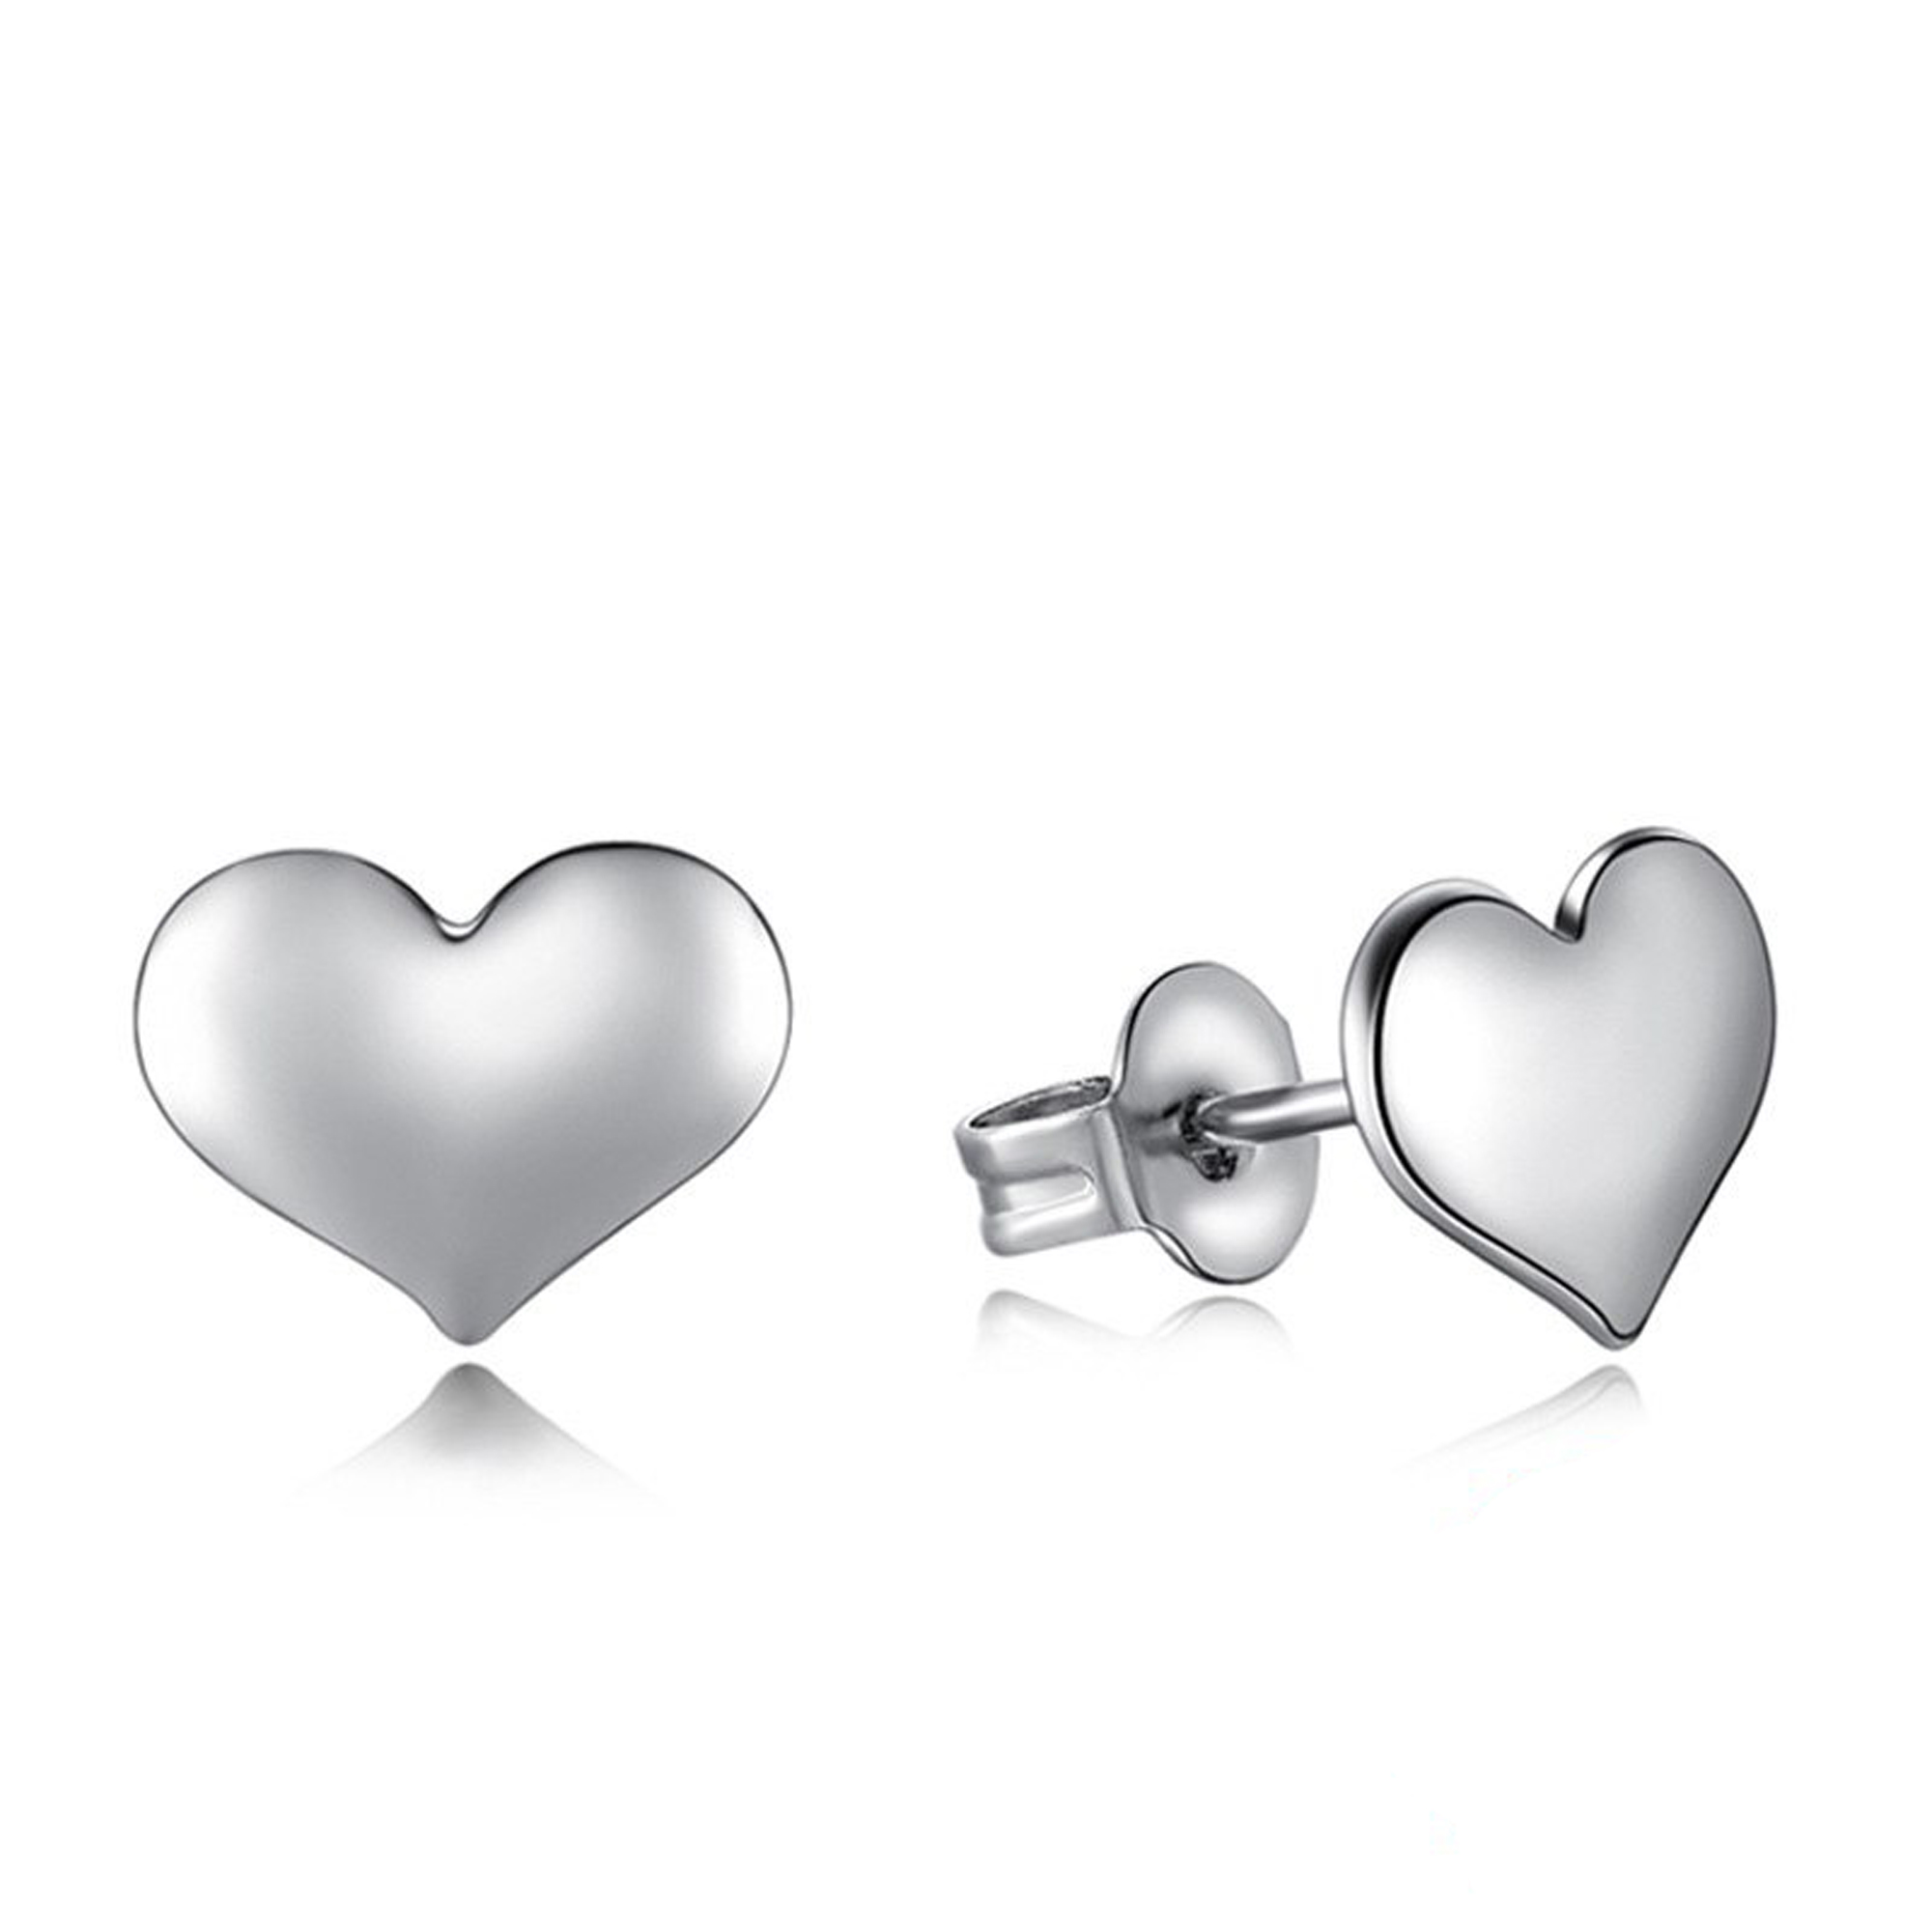 Silver Heart: Silver Heart Stud Earrings